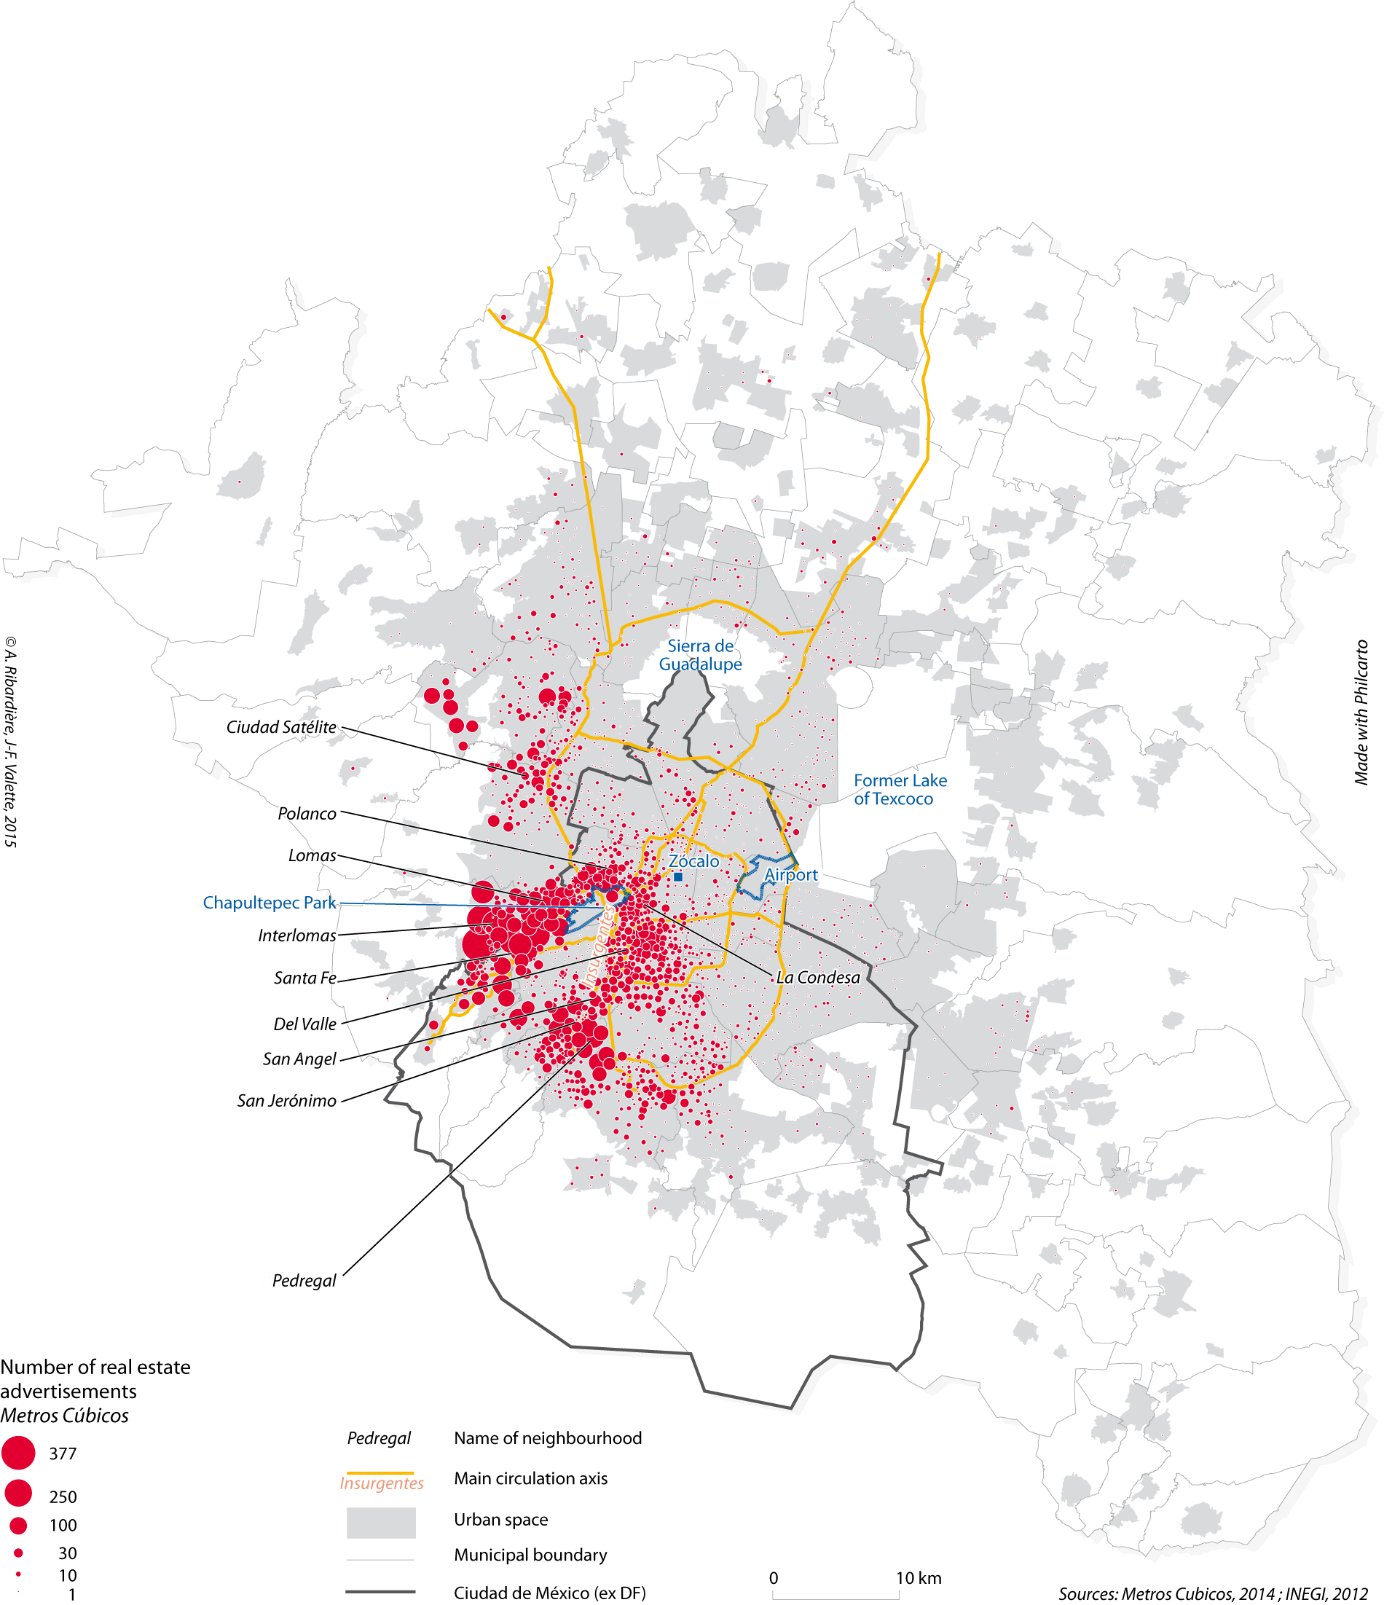 Geography Of Real Estate Prices In Mexico City Variability And Heterogeneity Of Values Recorded In Online Advertisements